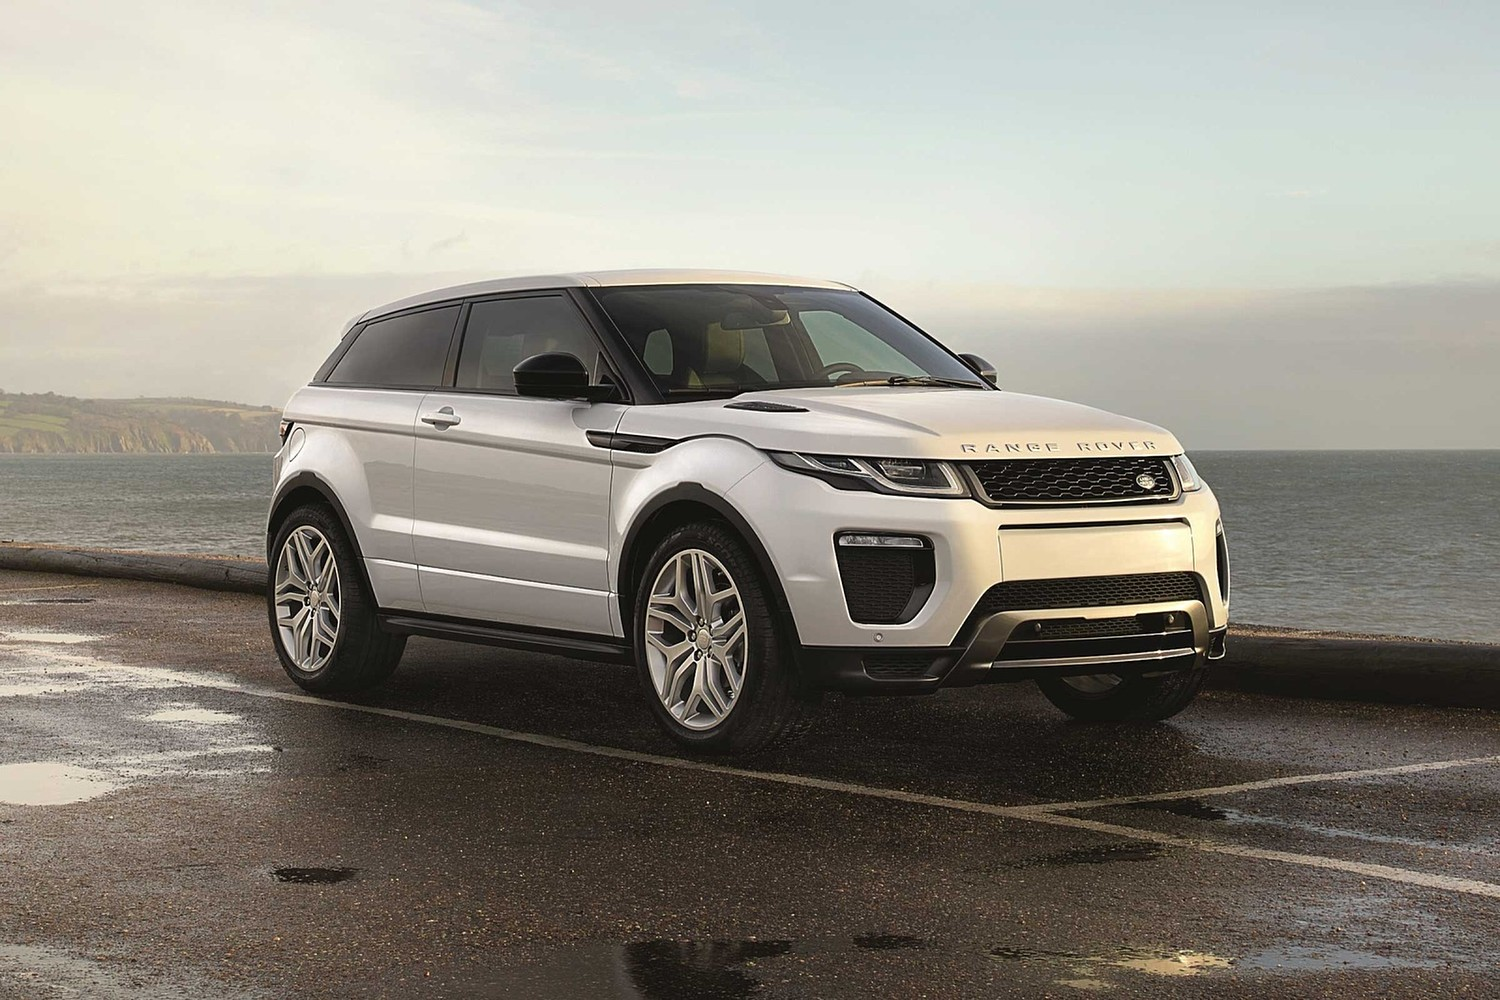 2018 Land Rover Range Rover Evoque HSE Dynamic 237 HP 4dr SUV Exterior Shown